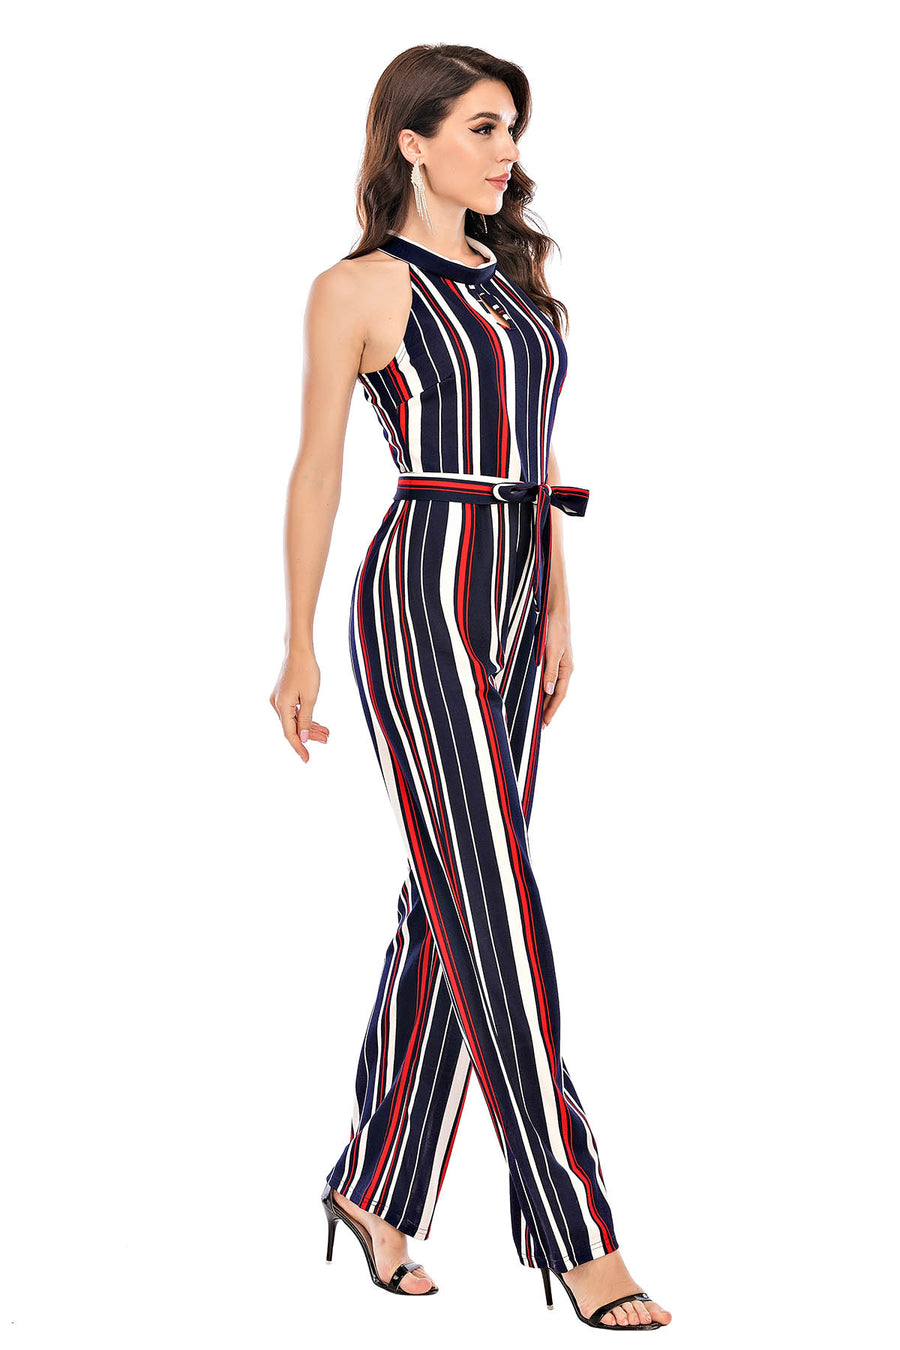 Mantra Pakistan Stripe Halter Neck Jumpsuit | Western Wear